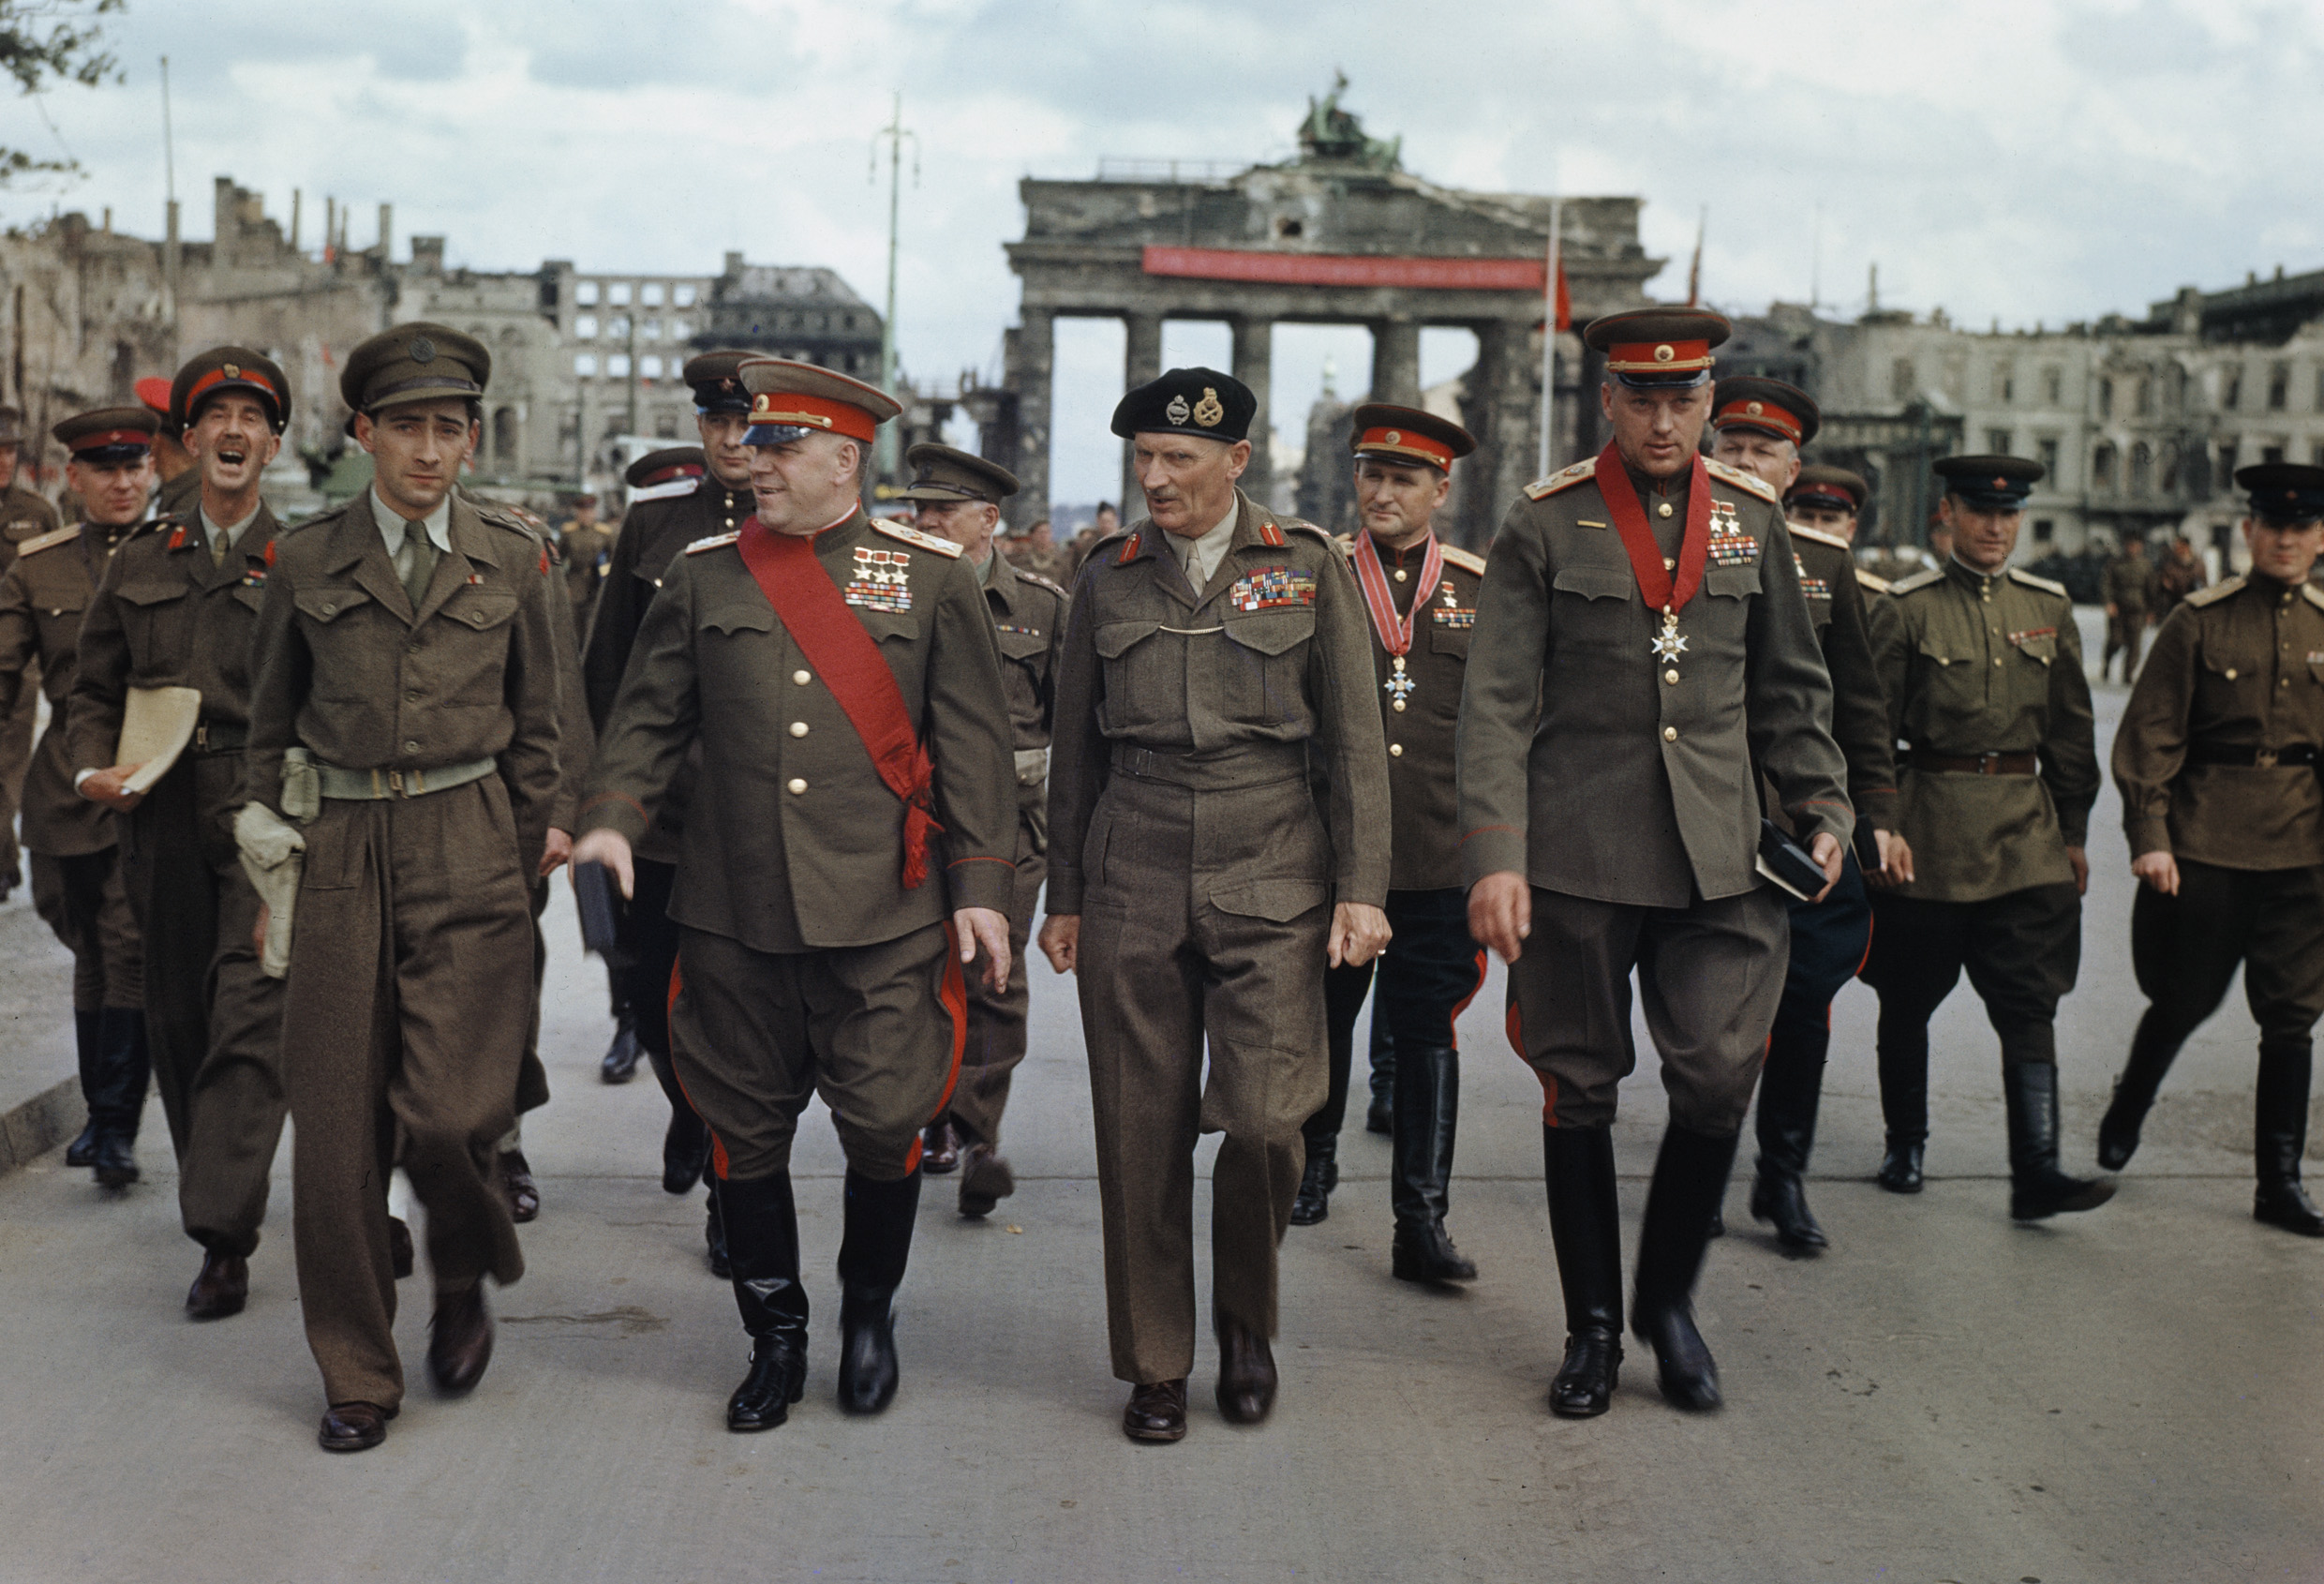 Red Army - Wikipedia